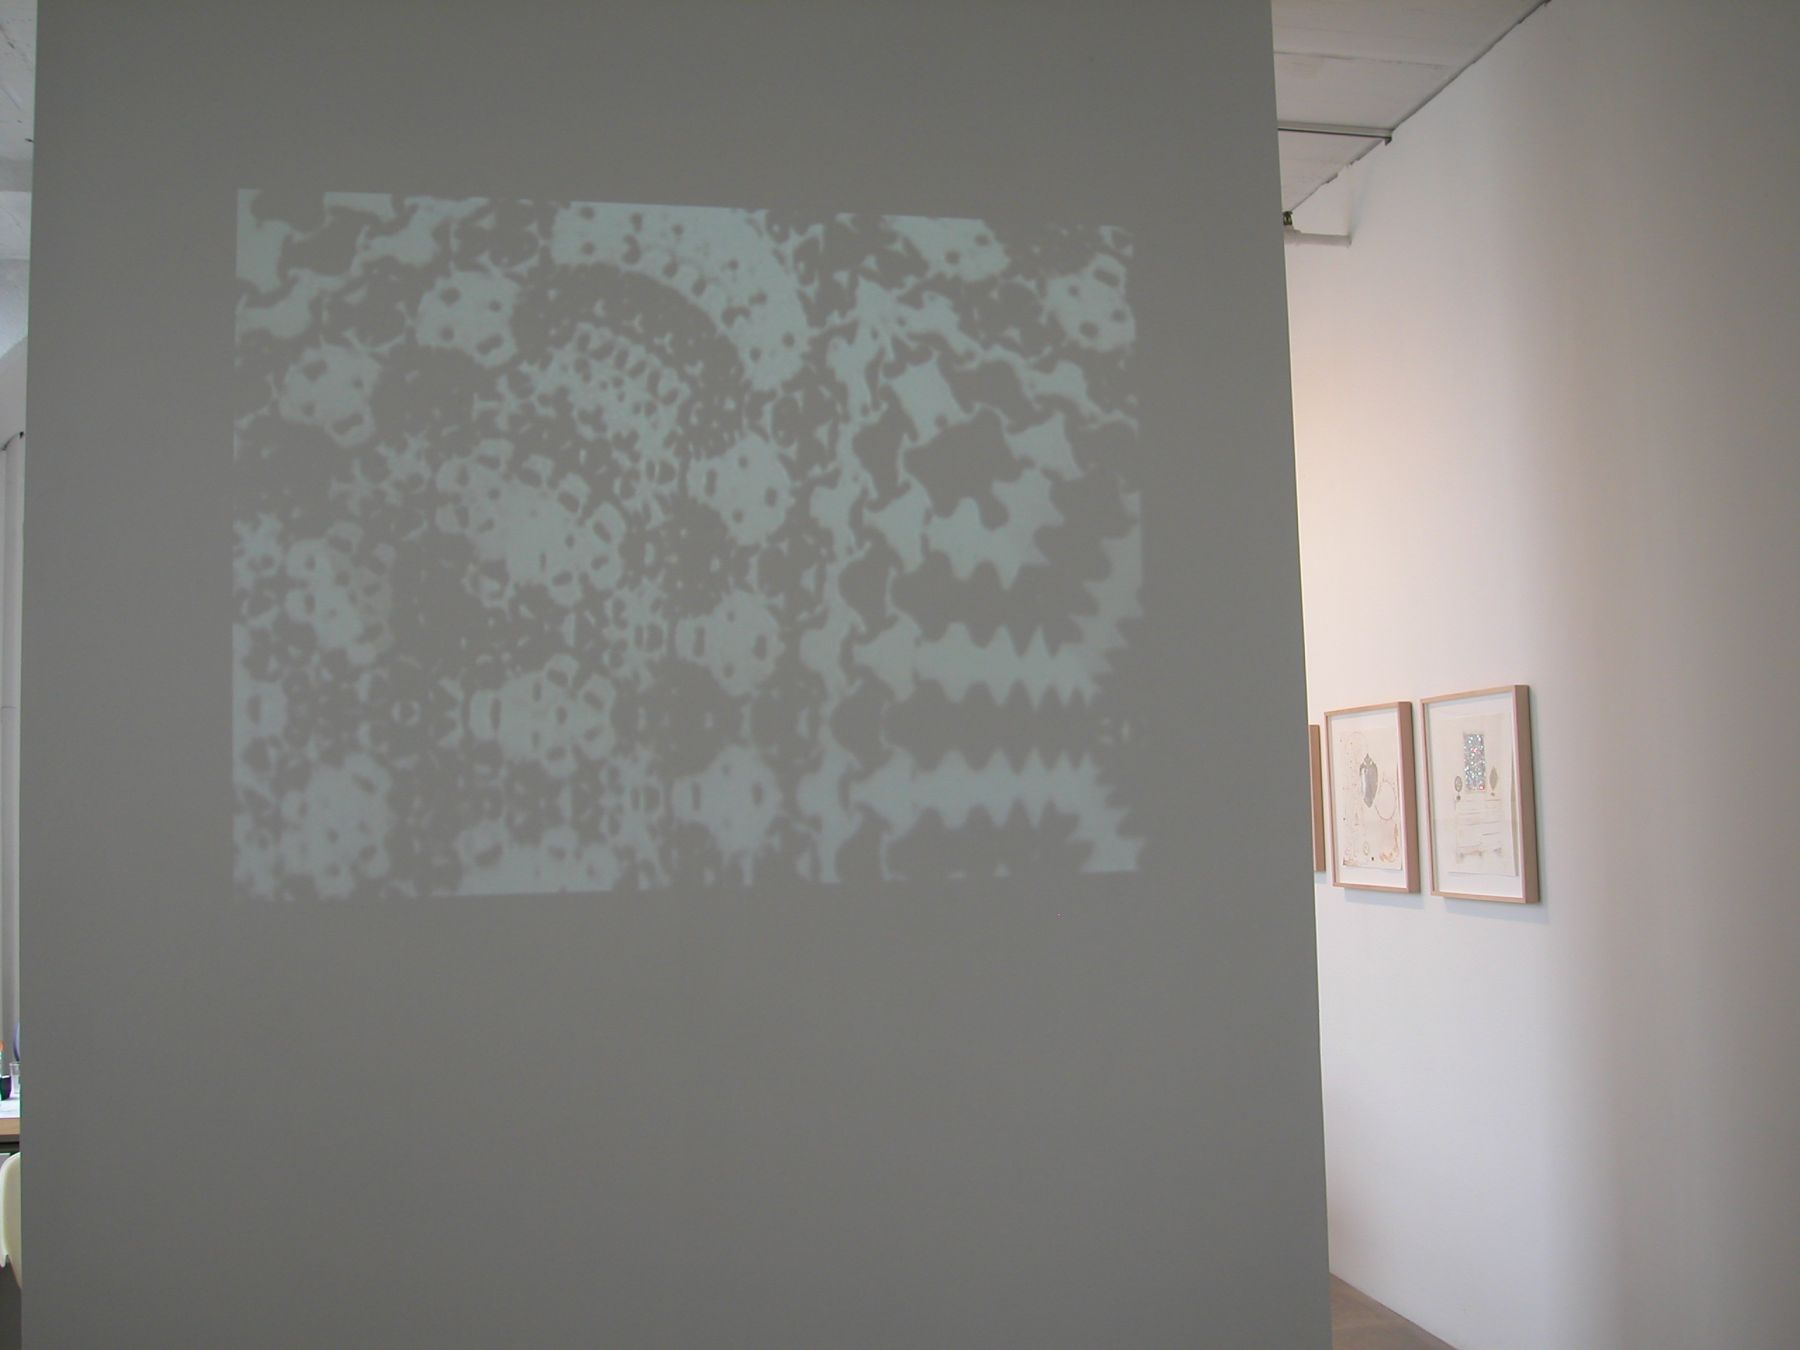 Installation view, The Jeweleigha Set, Greene Naftali, New York, 2005